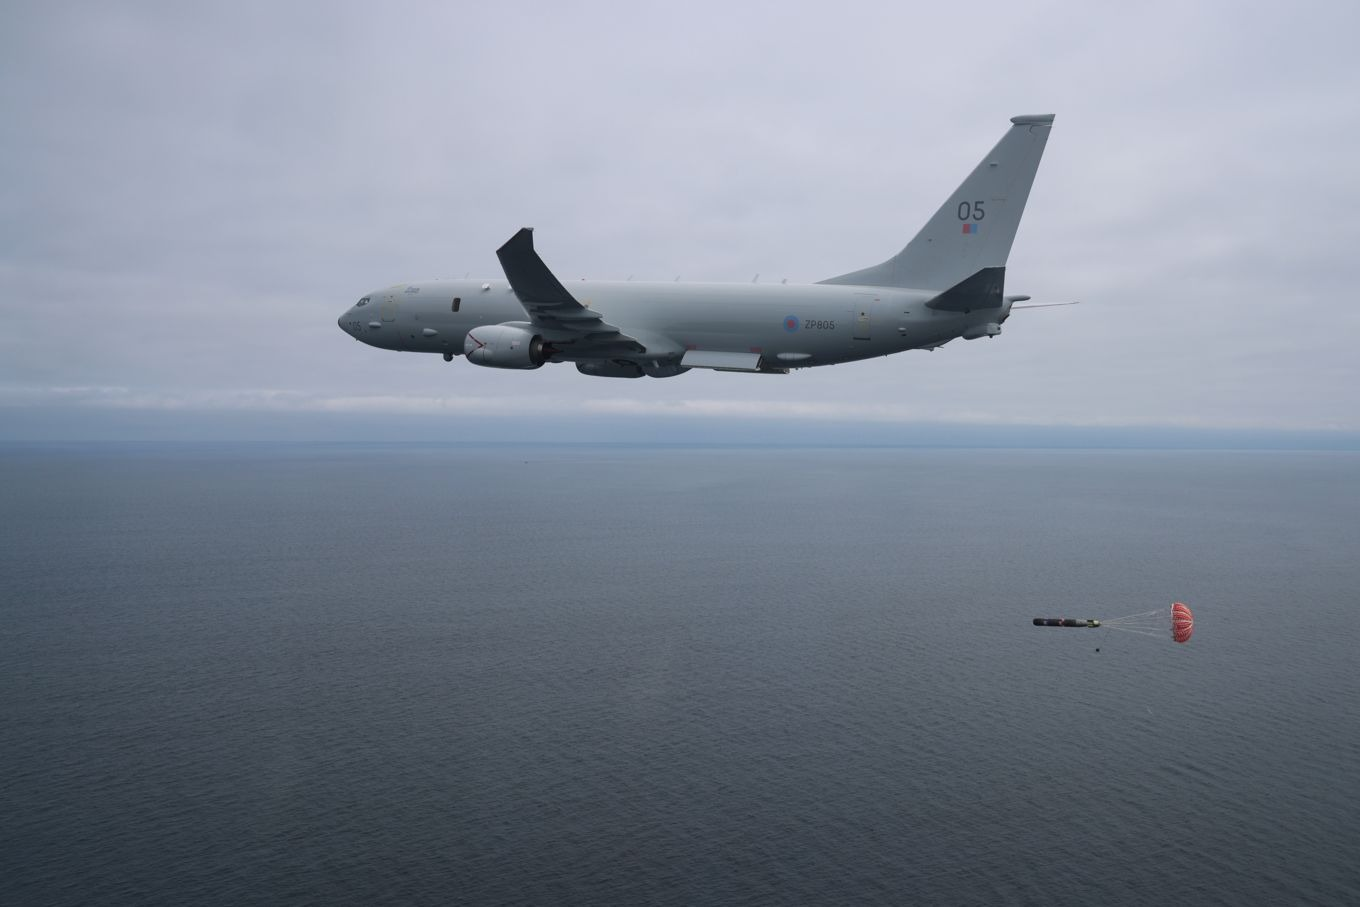 Royal Air Force P-8A Poseidon Maritime Patrol Aircraft Releases Torpedo for the First Time